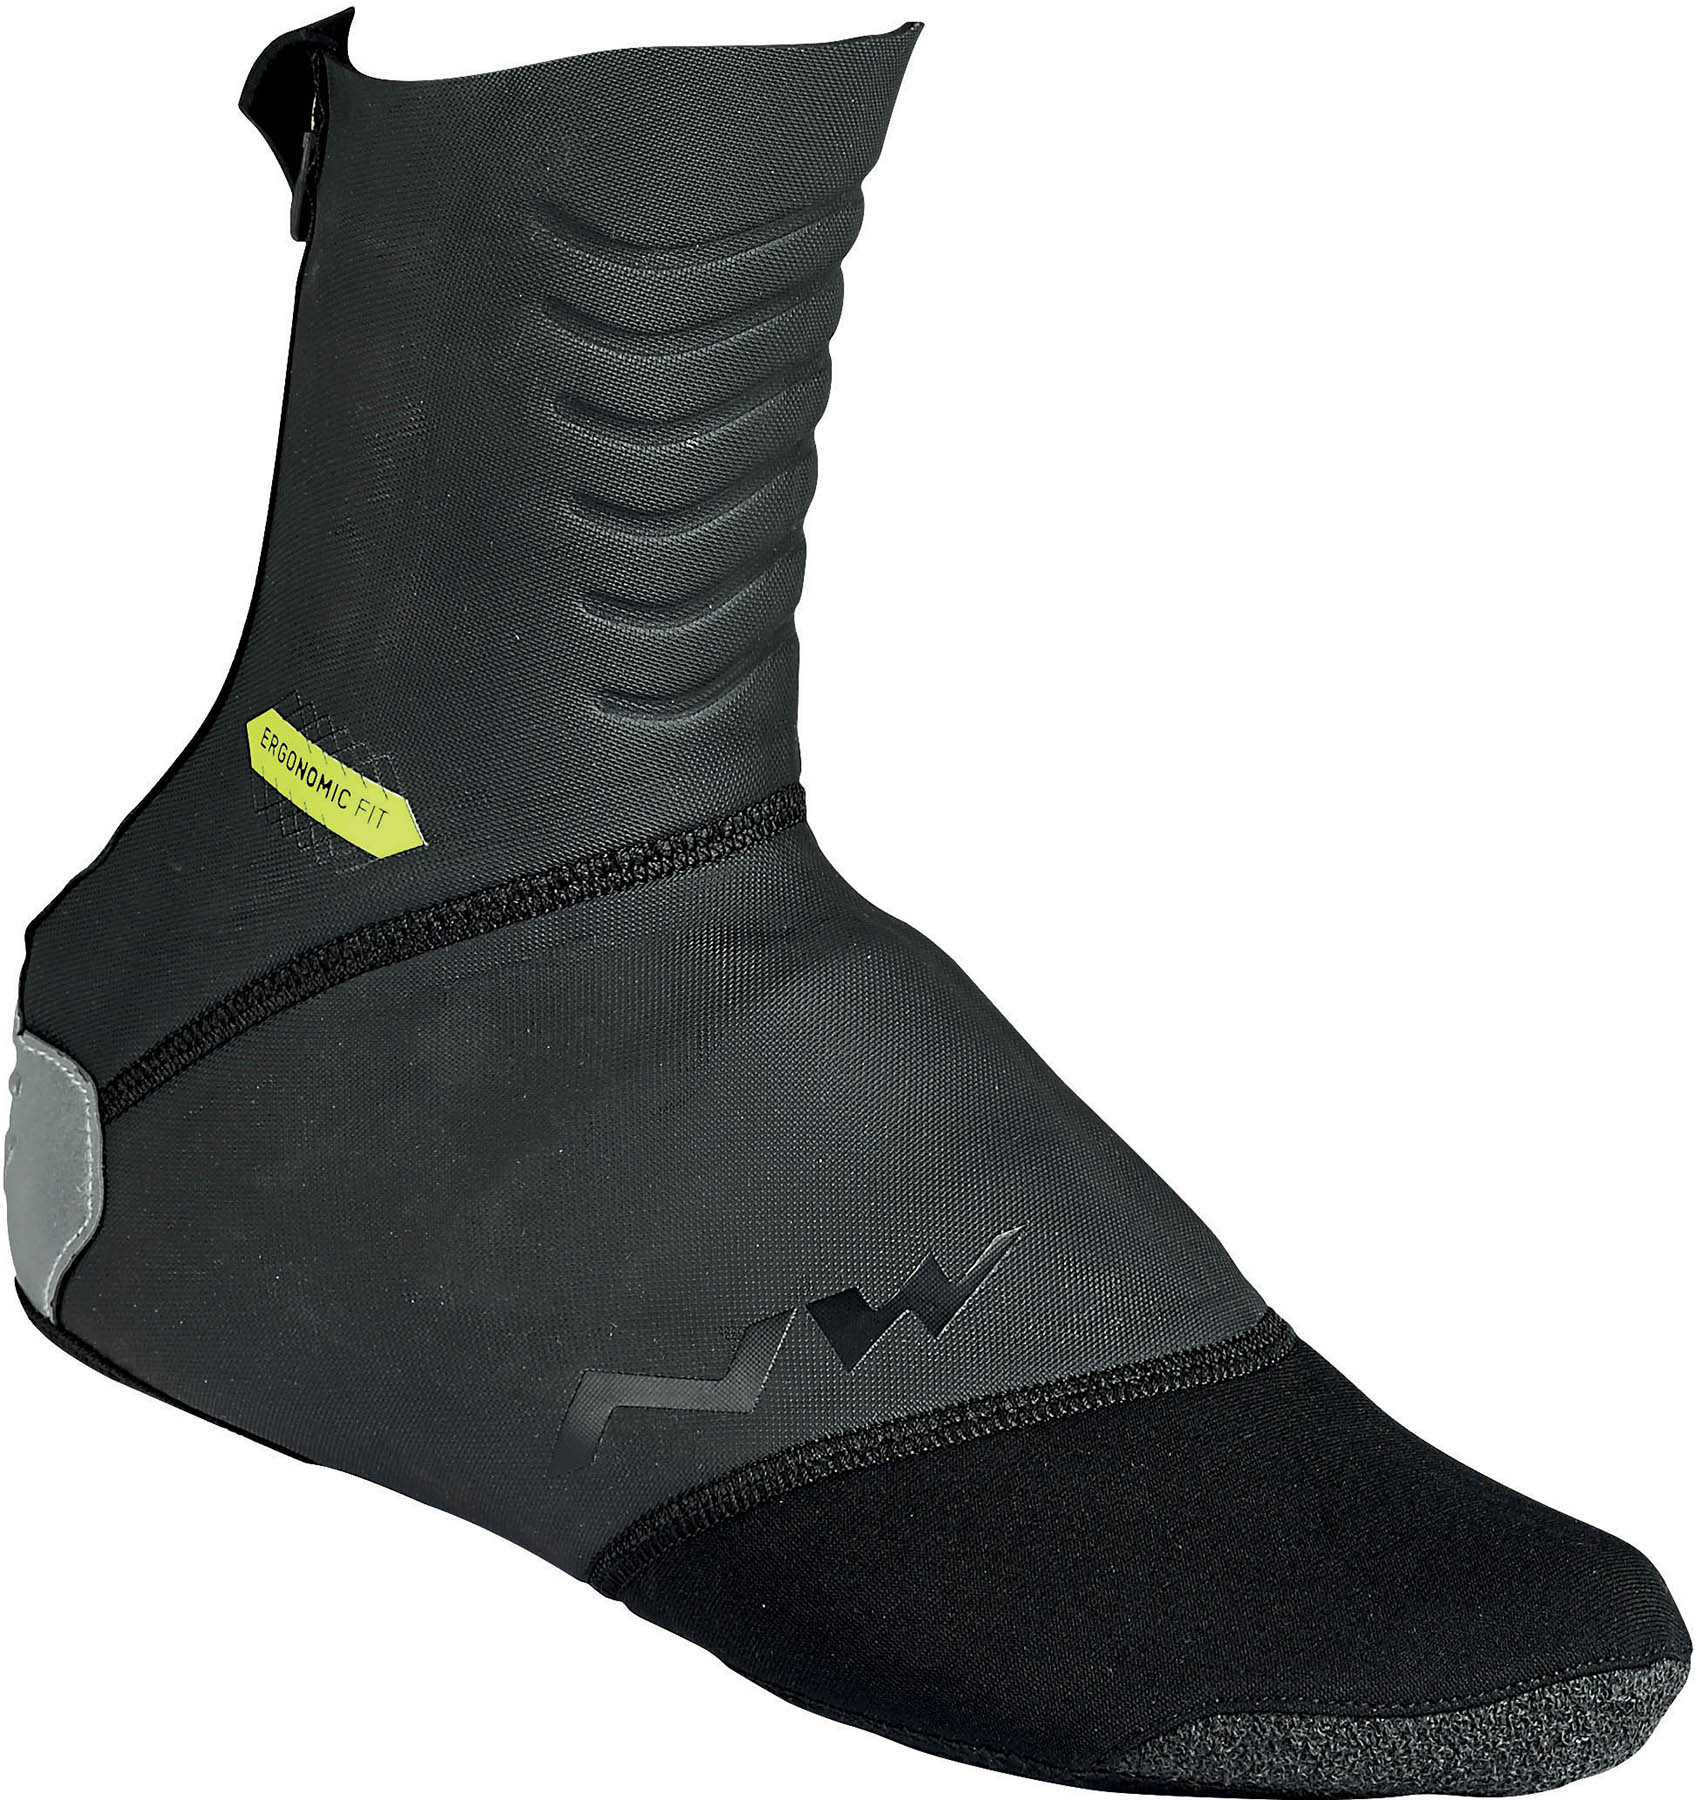 Northwave Storm Shoecover | shoecovers_clothes